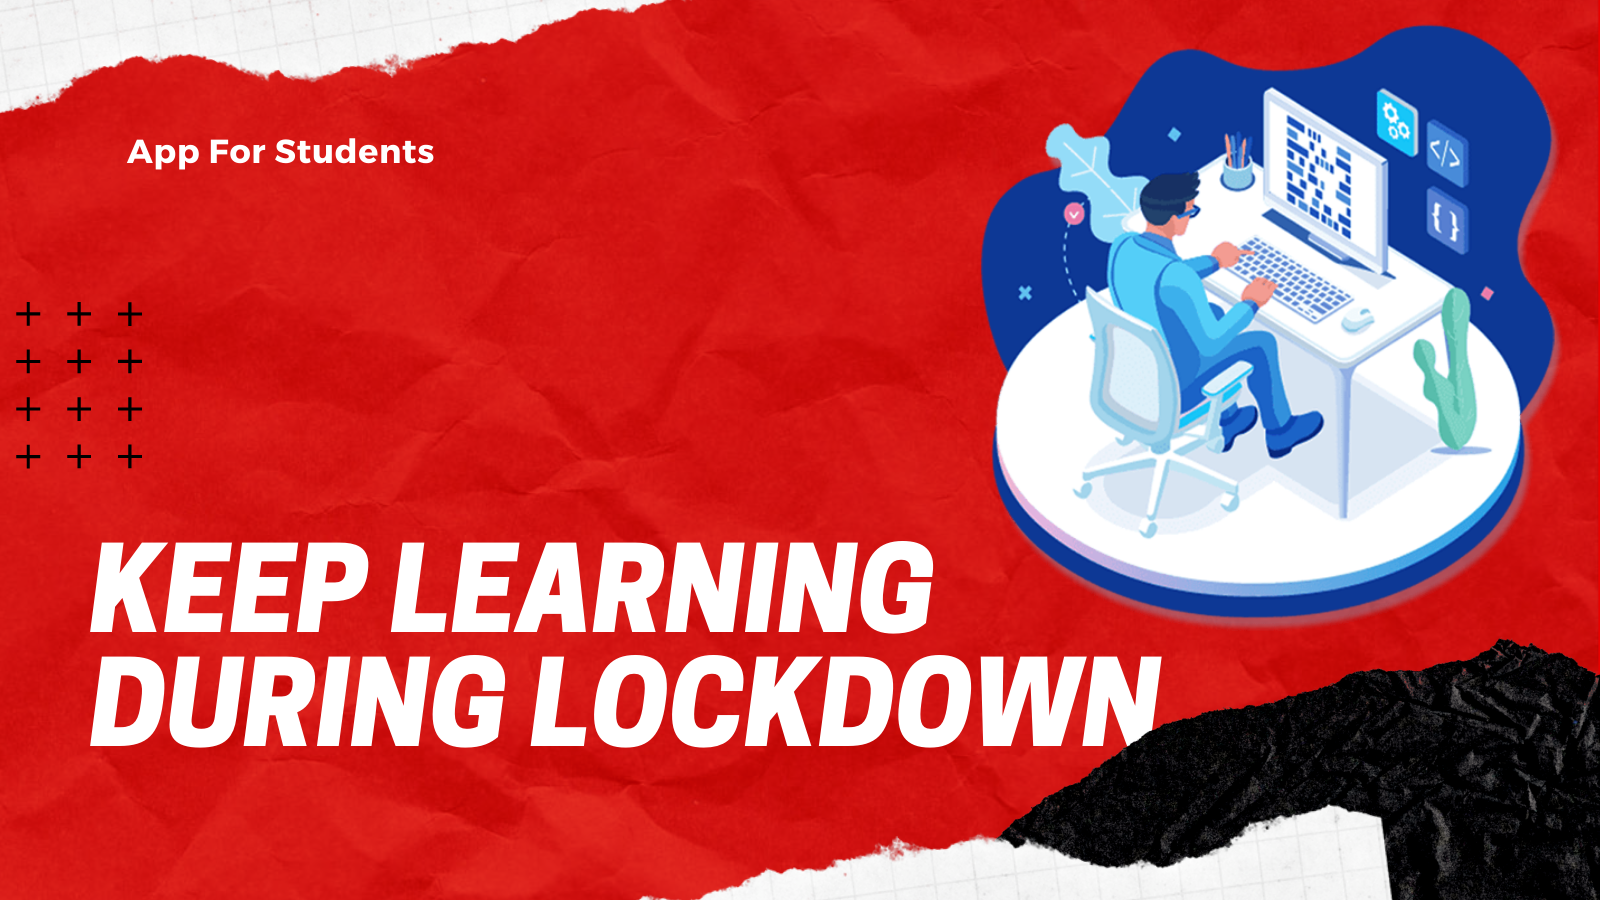 Beneficial Apps For Kids to Keep Learning During Lockdown